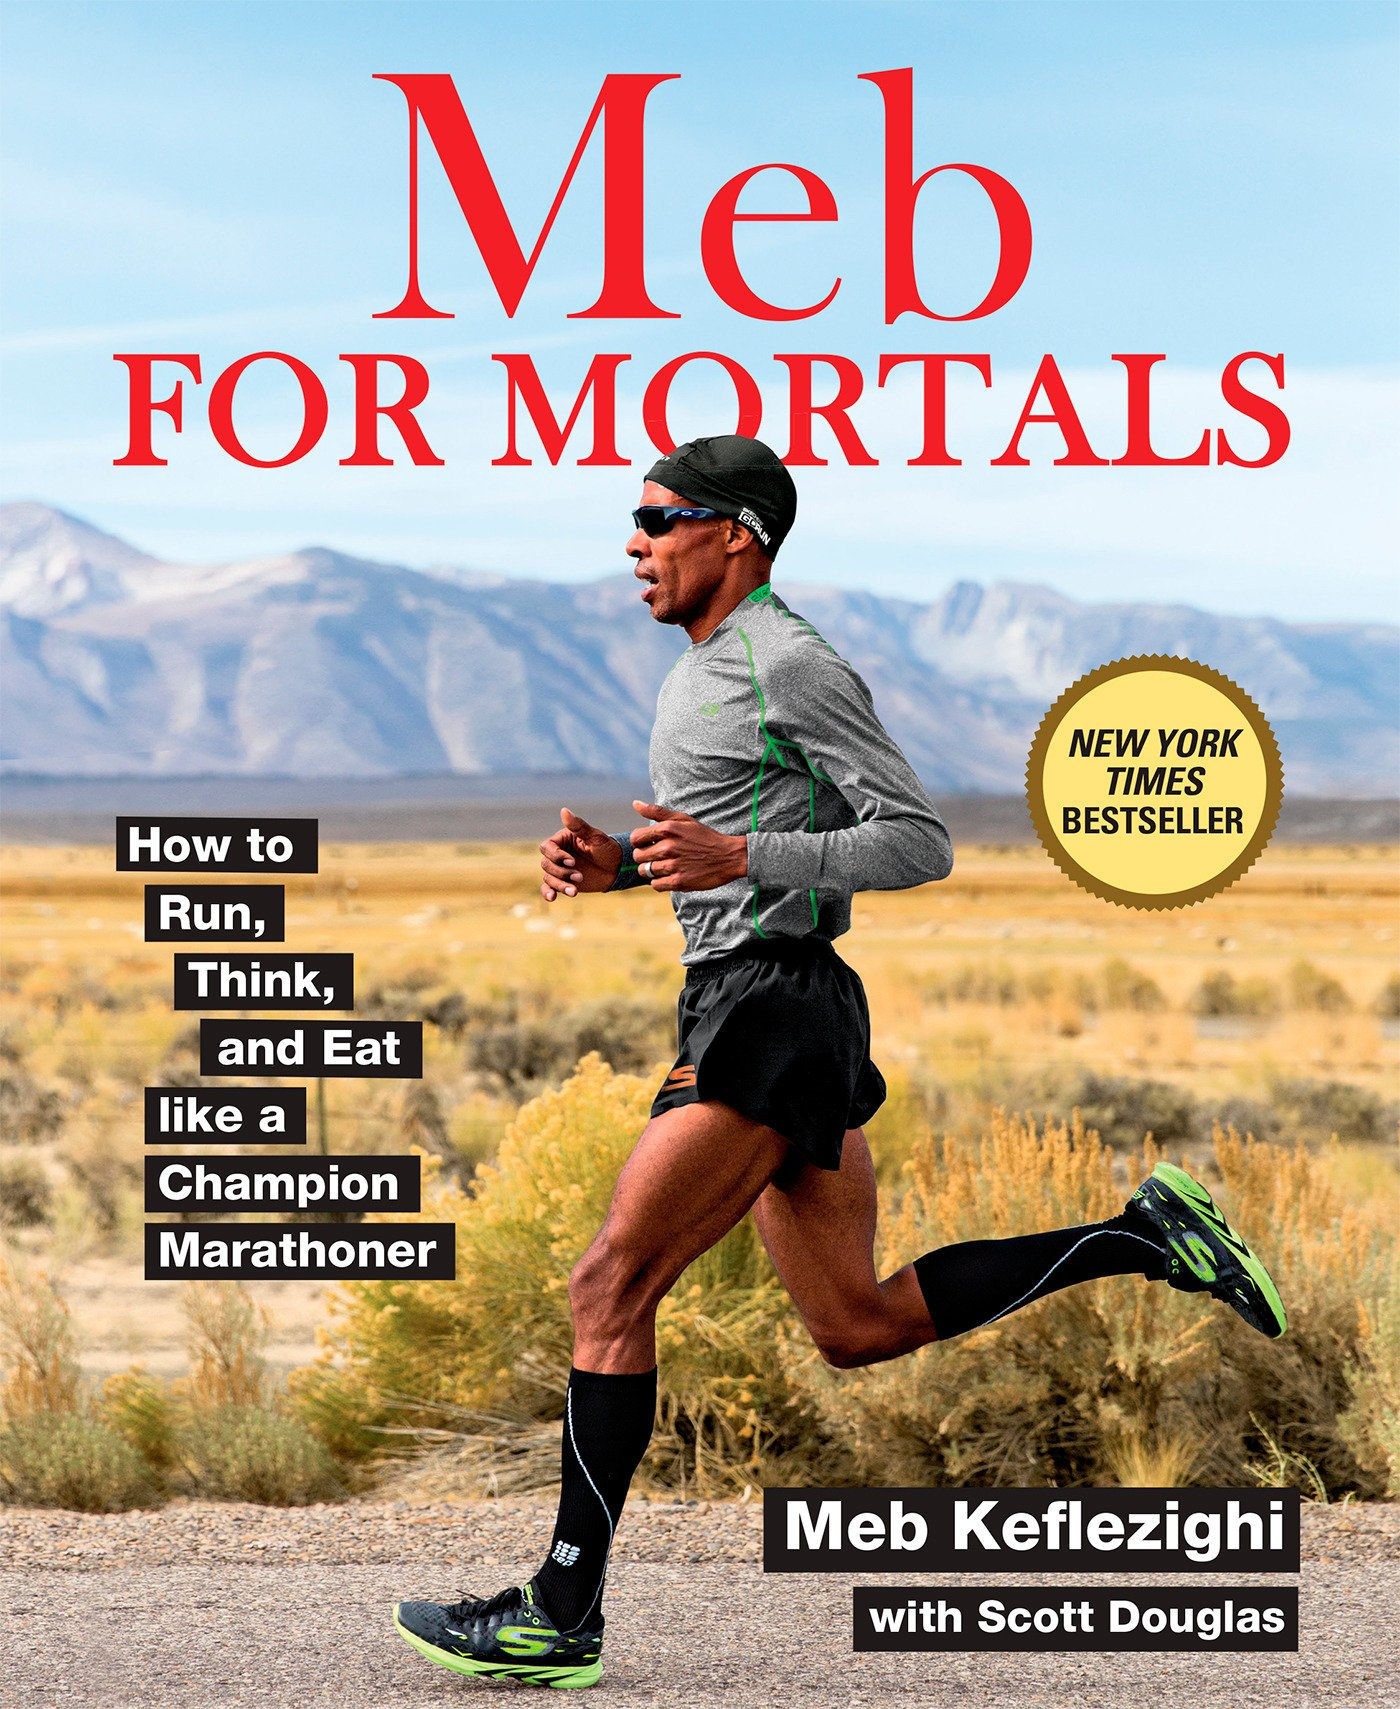 Meb For Mortals: How to Run, Think, and Eat like a Champion Marathoner